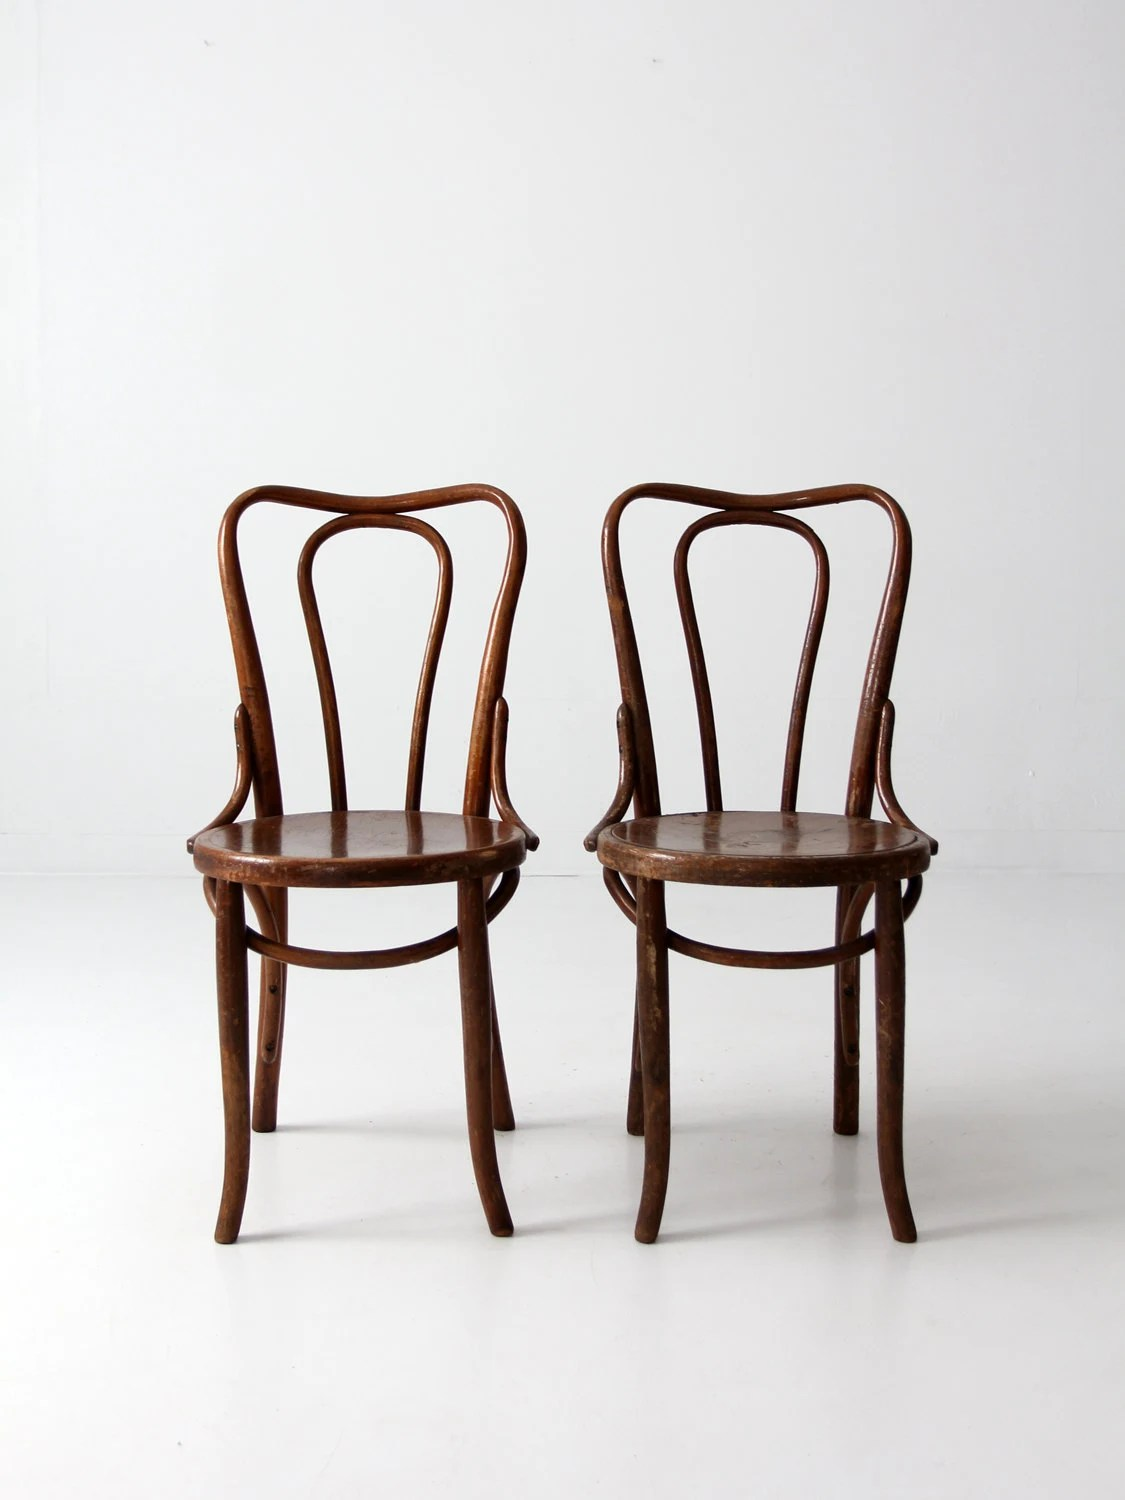 vintage bentwood chairs ergonomic kneeling posture office chair antique thonet style cafe pair by